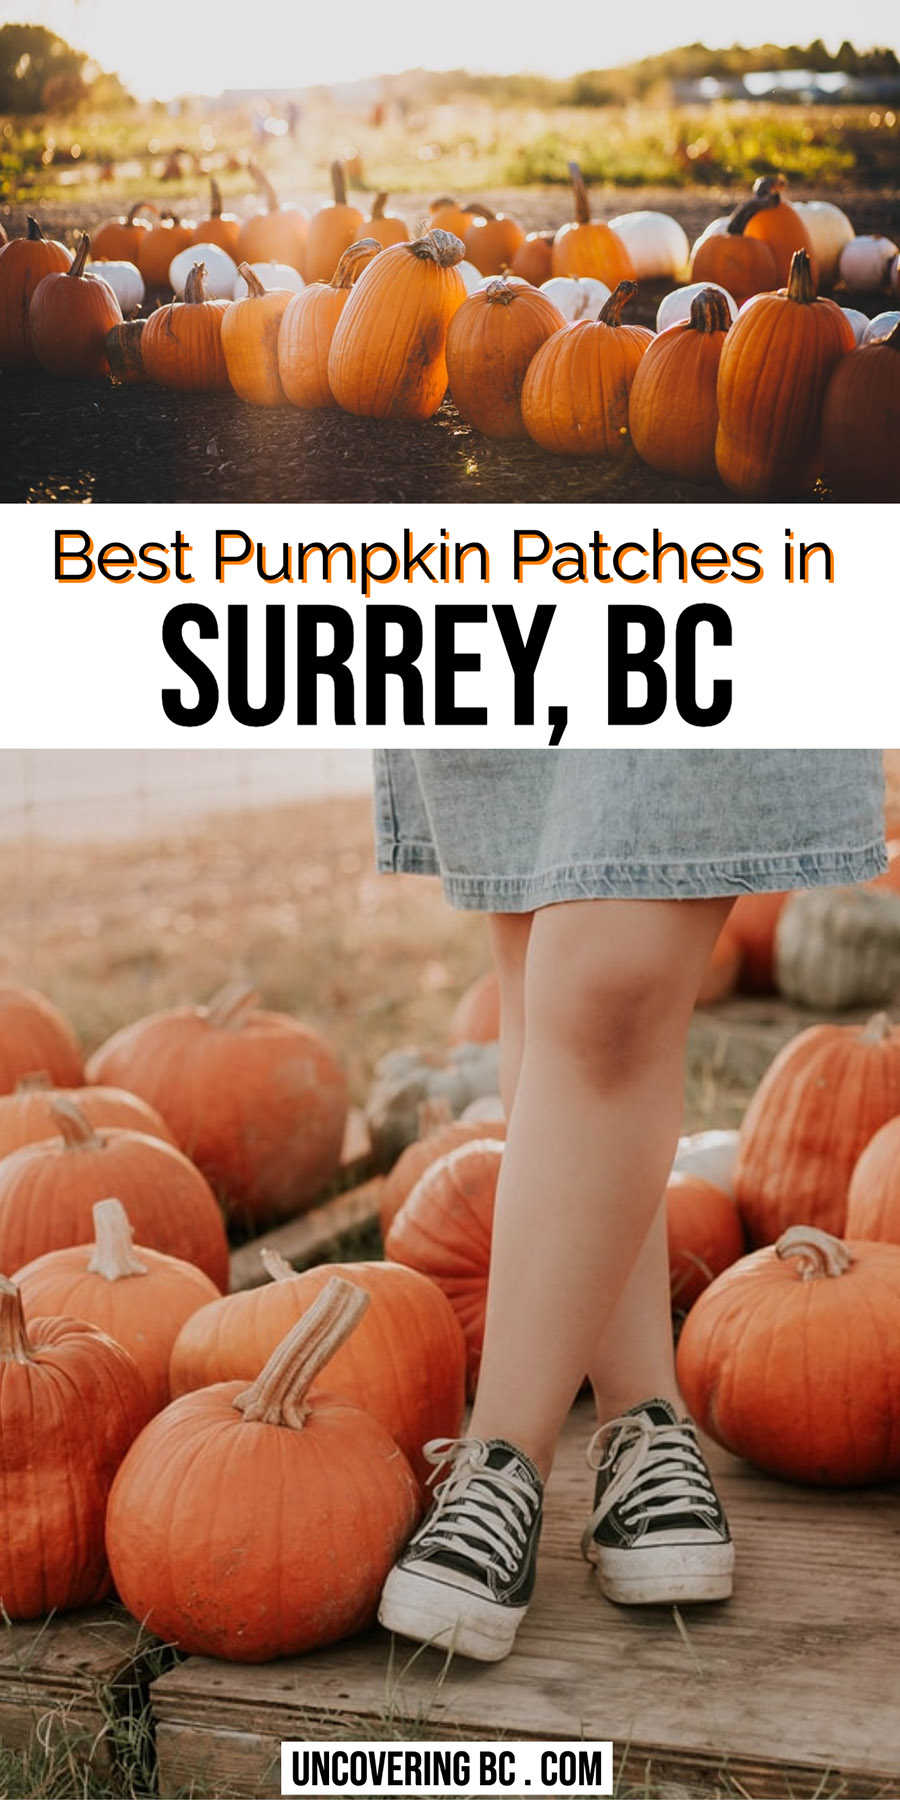 pumpkin picking surrey